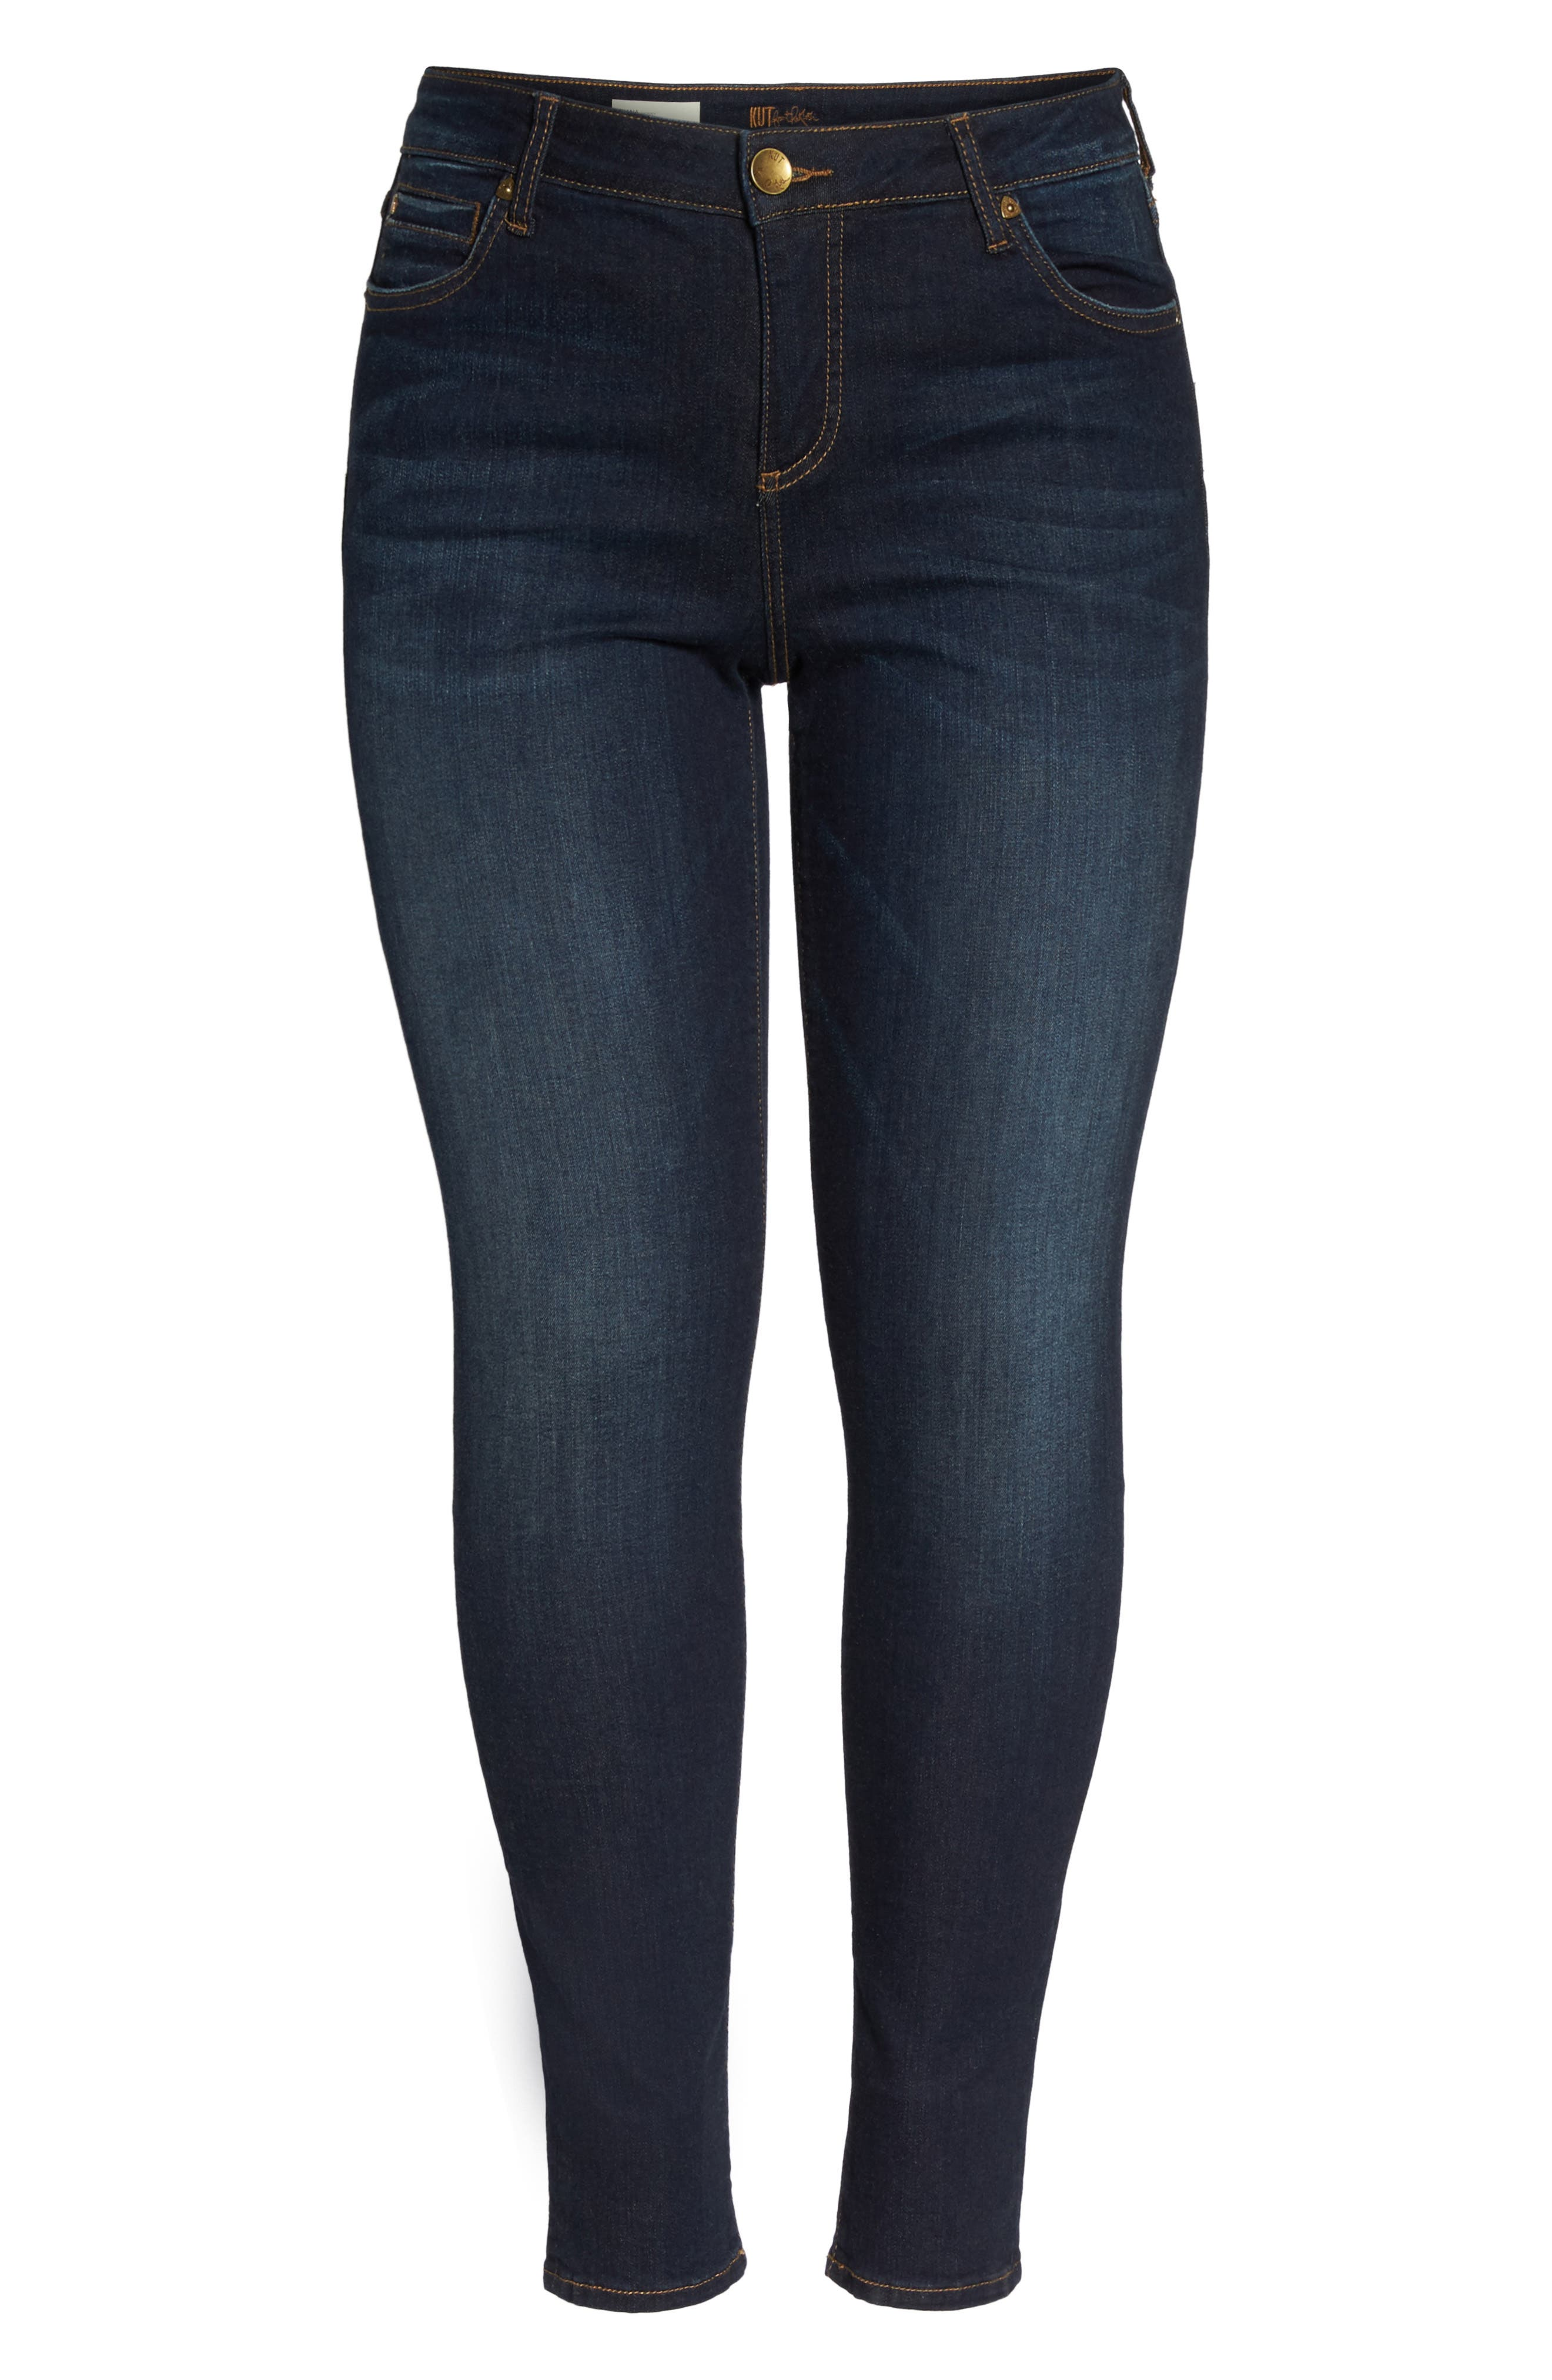 Diana Skinny Jeans,                             Alternate thumbnail 7, color,                             Blinding W/ Euro Base Wash